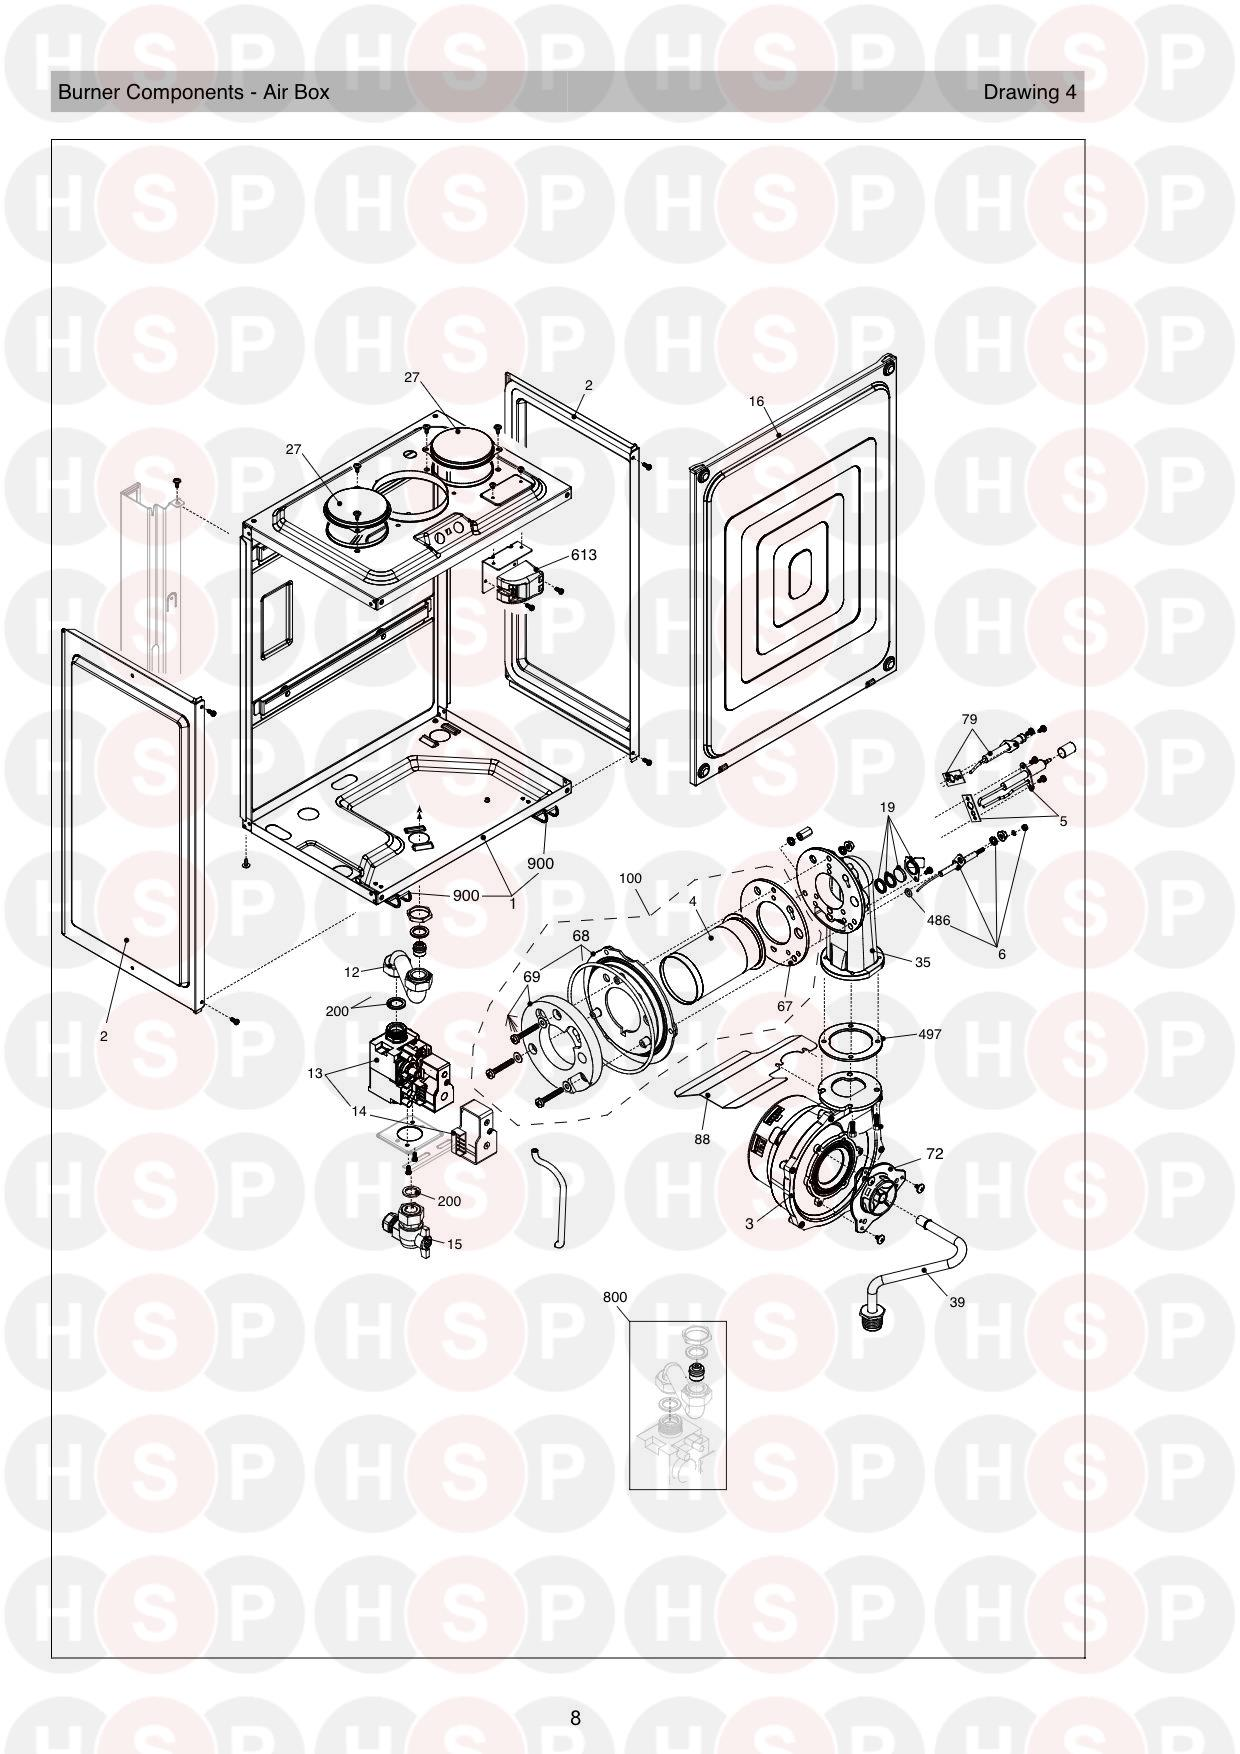 Burner Air Box diagram for Vokera Plus 18V Rev 0 (09/2017)